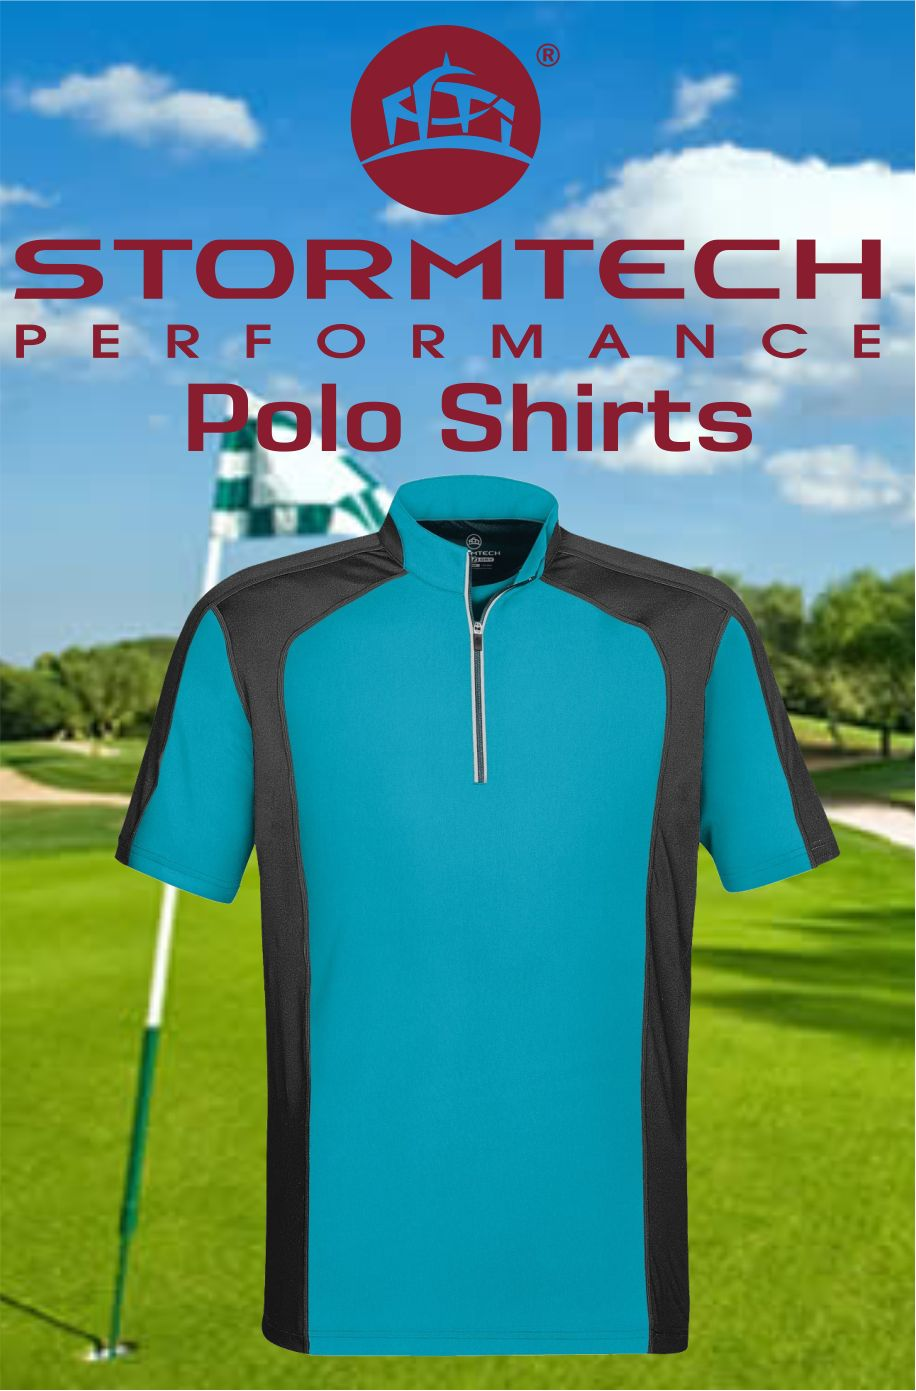 Stormtech Polo Shirts